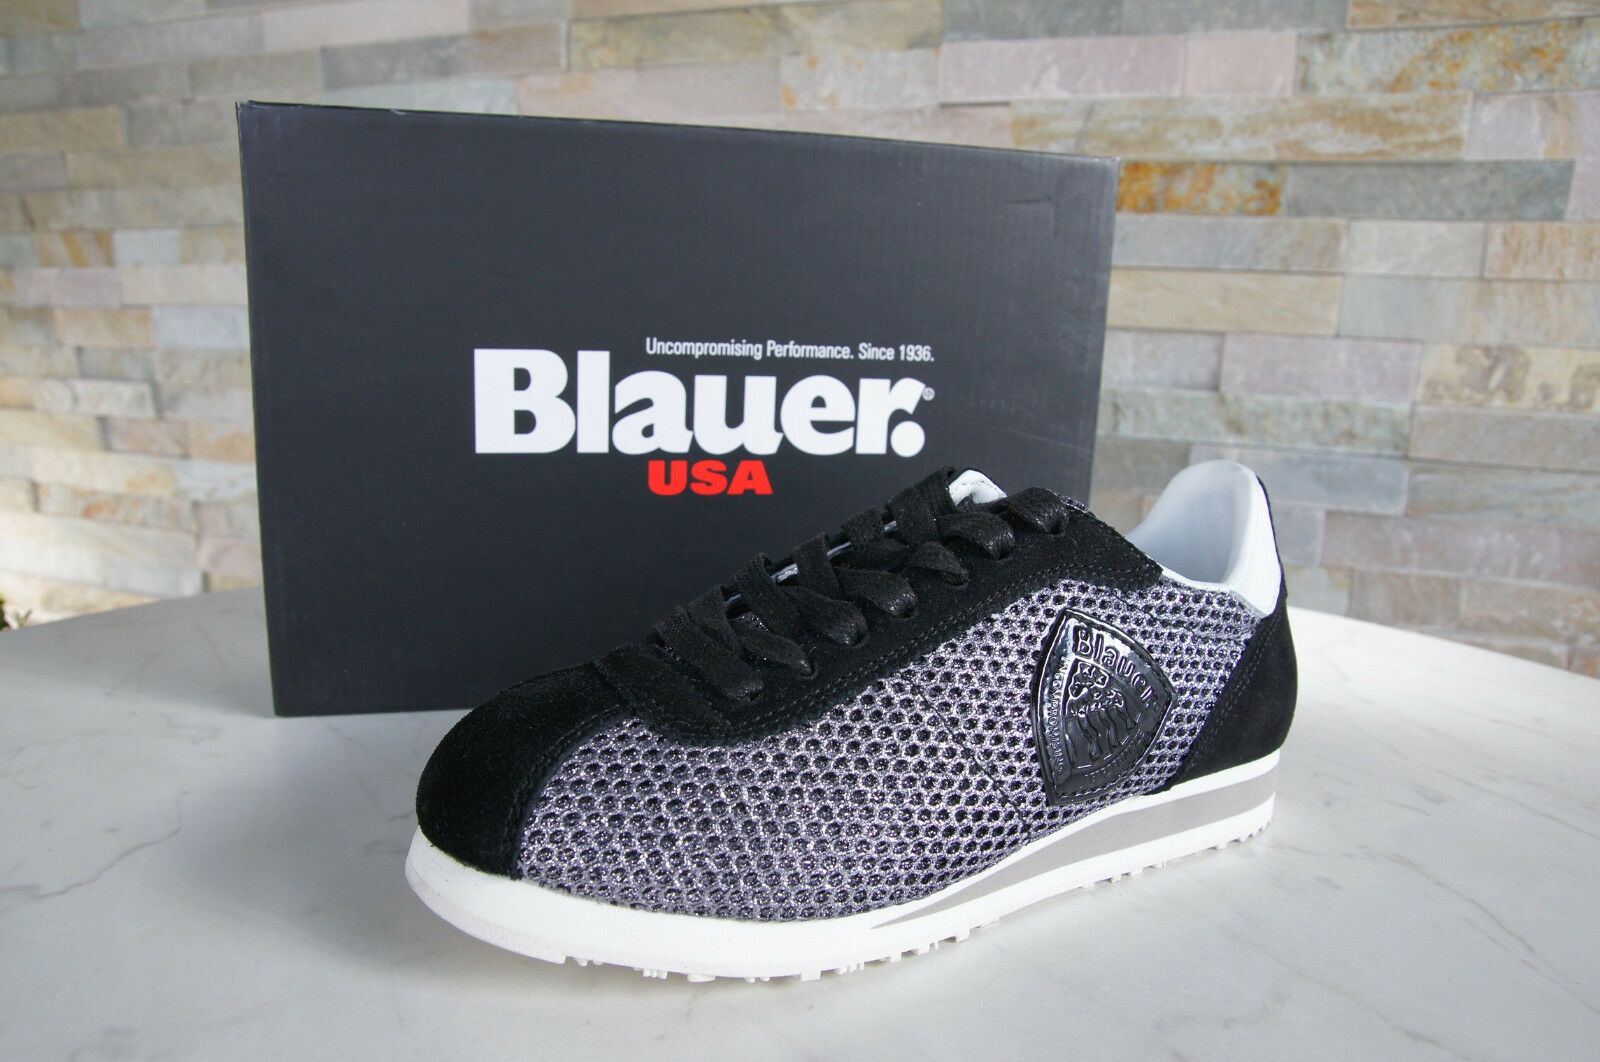 blueer USA Sz. 40 Sneakers Lace up shoes Bowling Black New Previously